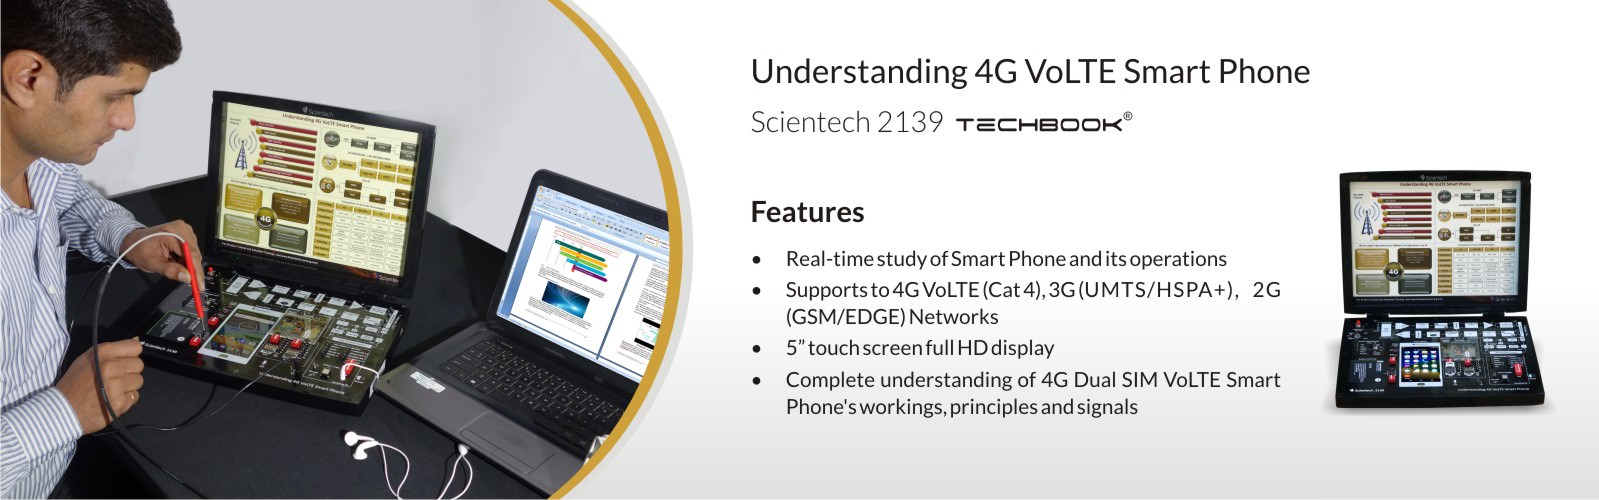 Understanding 4g Volte Smartphone, Wireless Communication